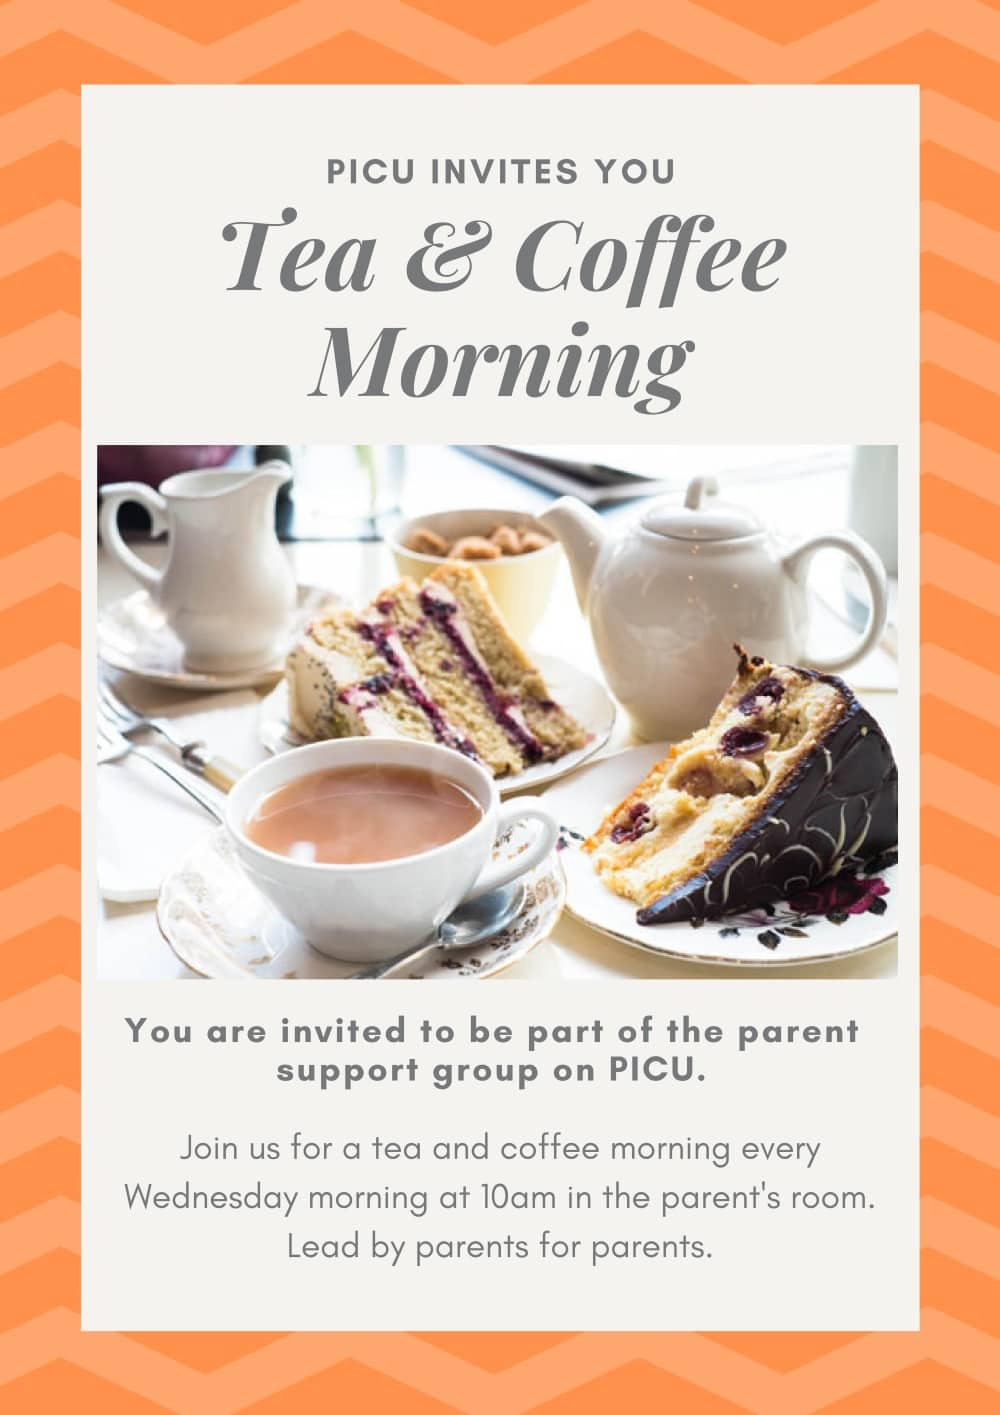 Tea & Coffee Morning